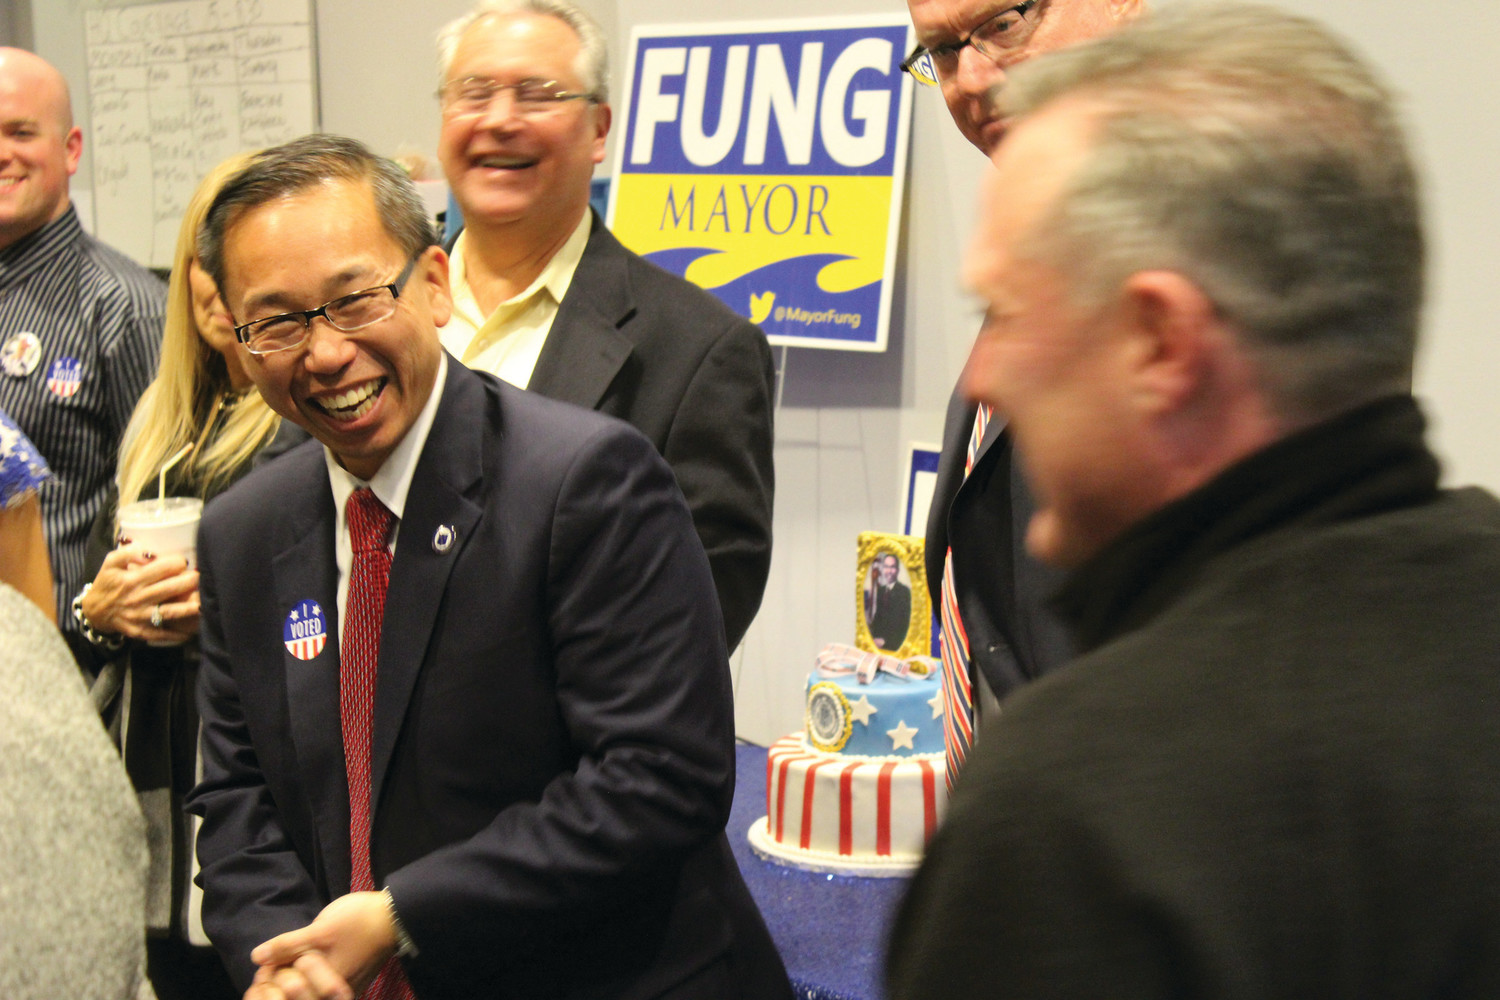 Fung during a campaign for his last term as mayor of Cranston.